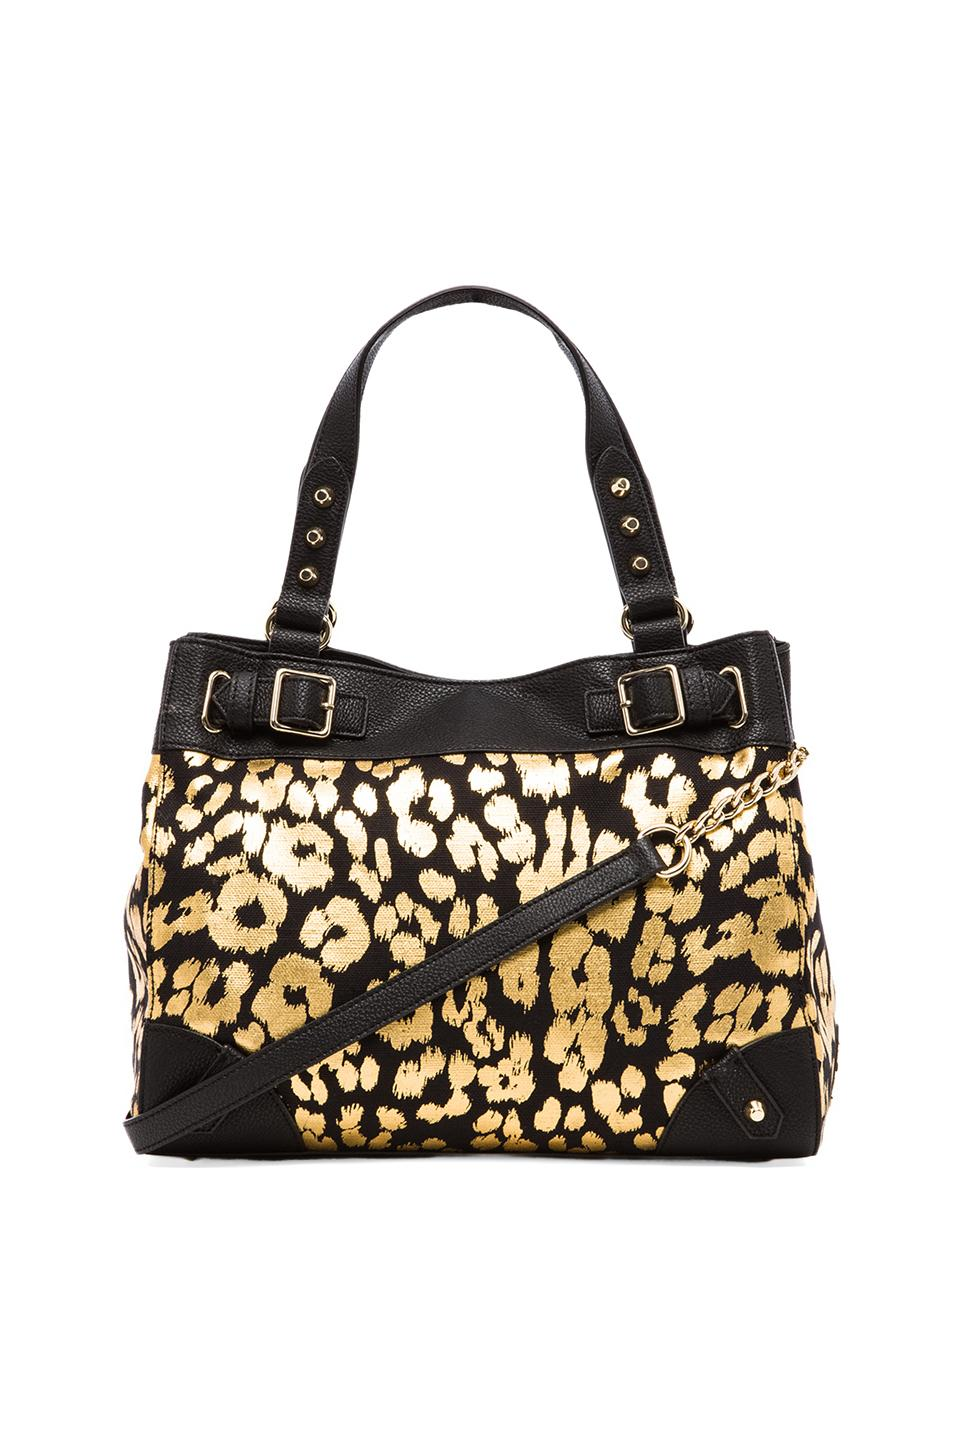 Juicy Couture Beverly Leopard Daydreamer Tote in Black & Gold Leopard